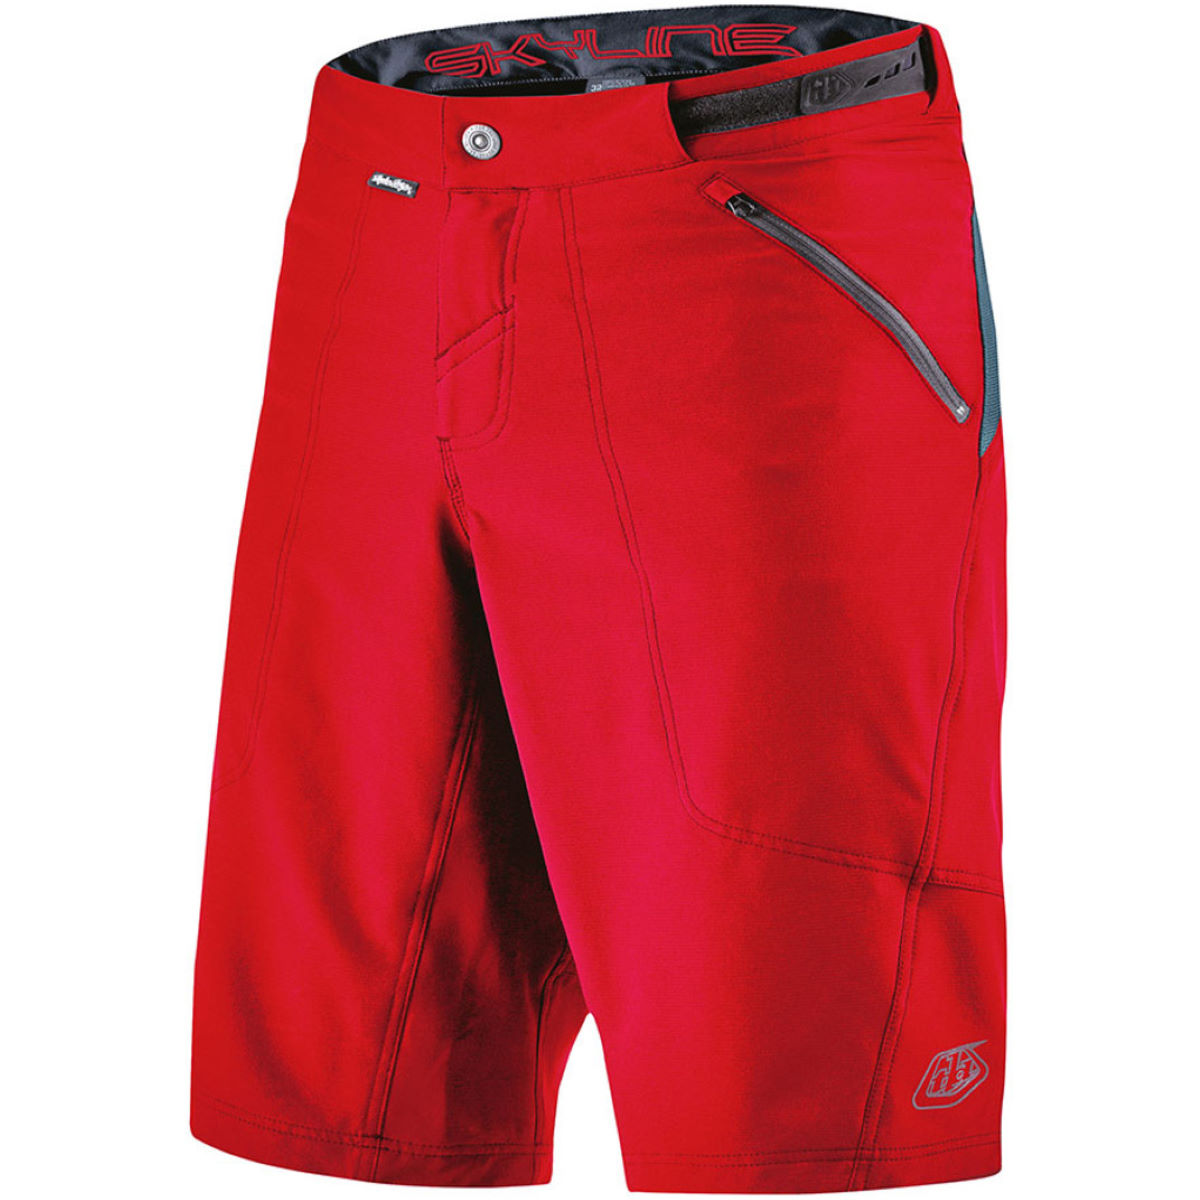 Short Enfant Troy Lee Designs Skyline - 26 Rouge Shorts VTT